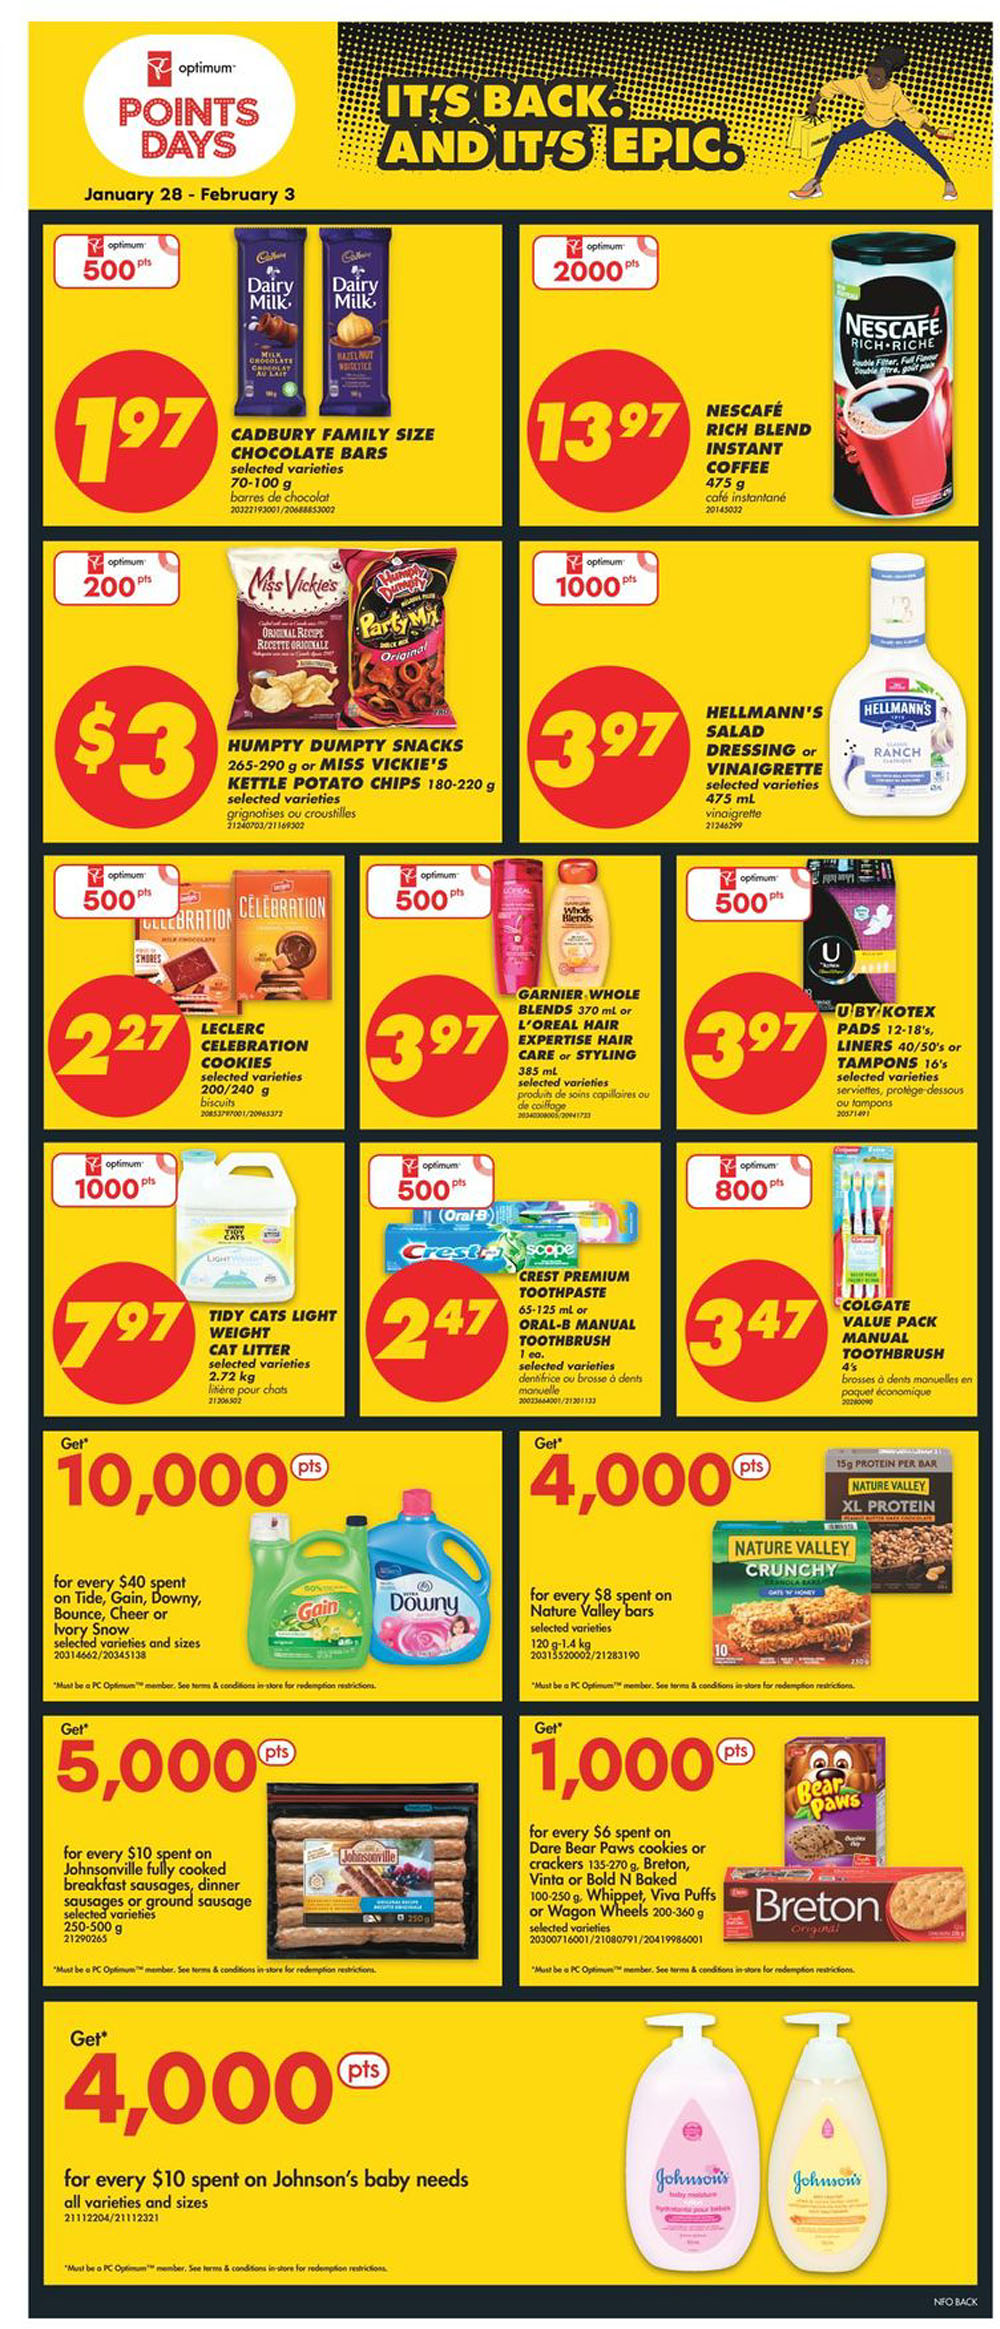 No Frills - Weekly Flyer Specials - Page 10